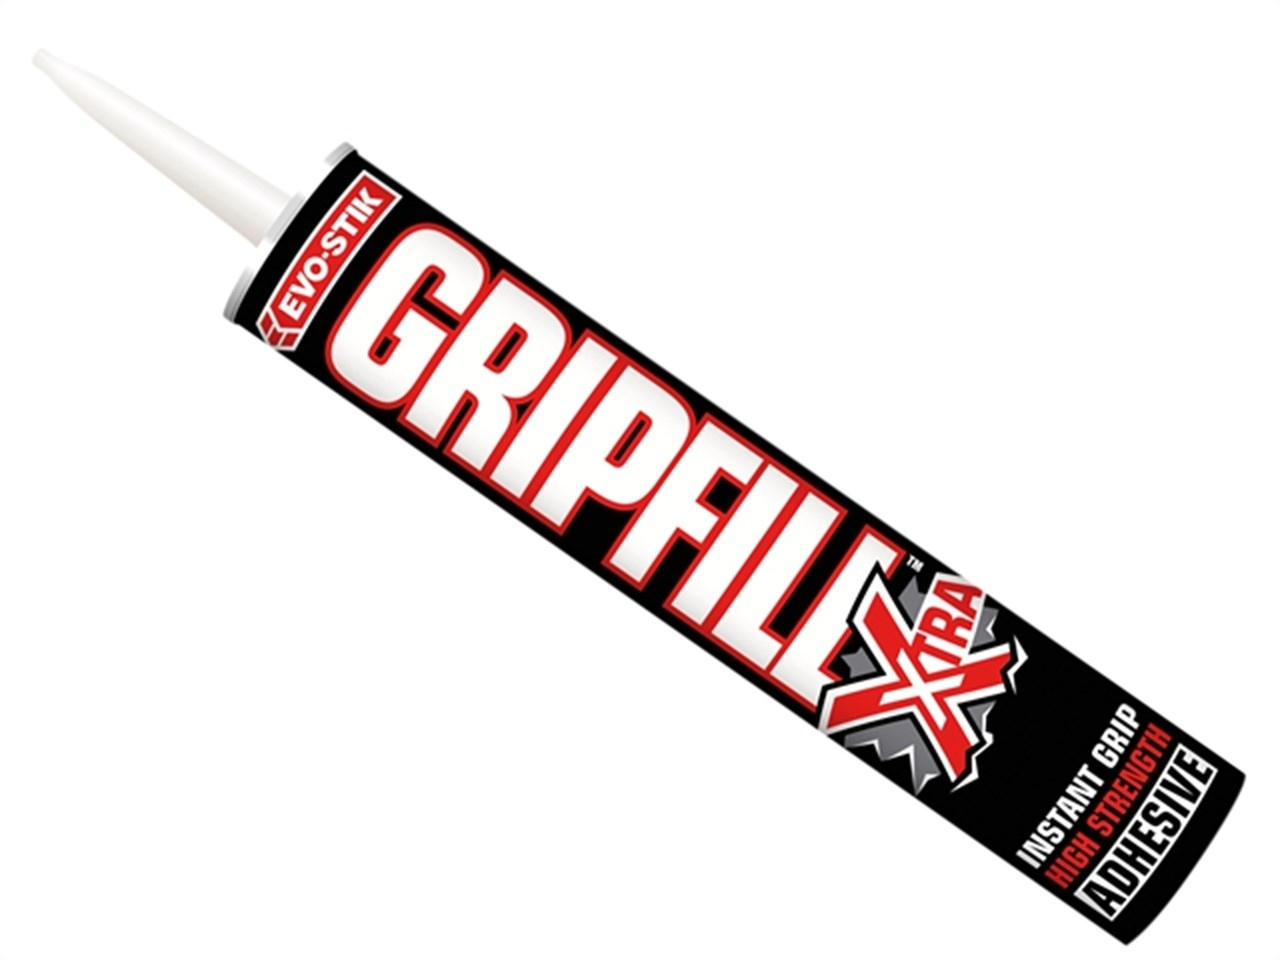 Gripfill Xtra Adhesive 350ml